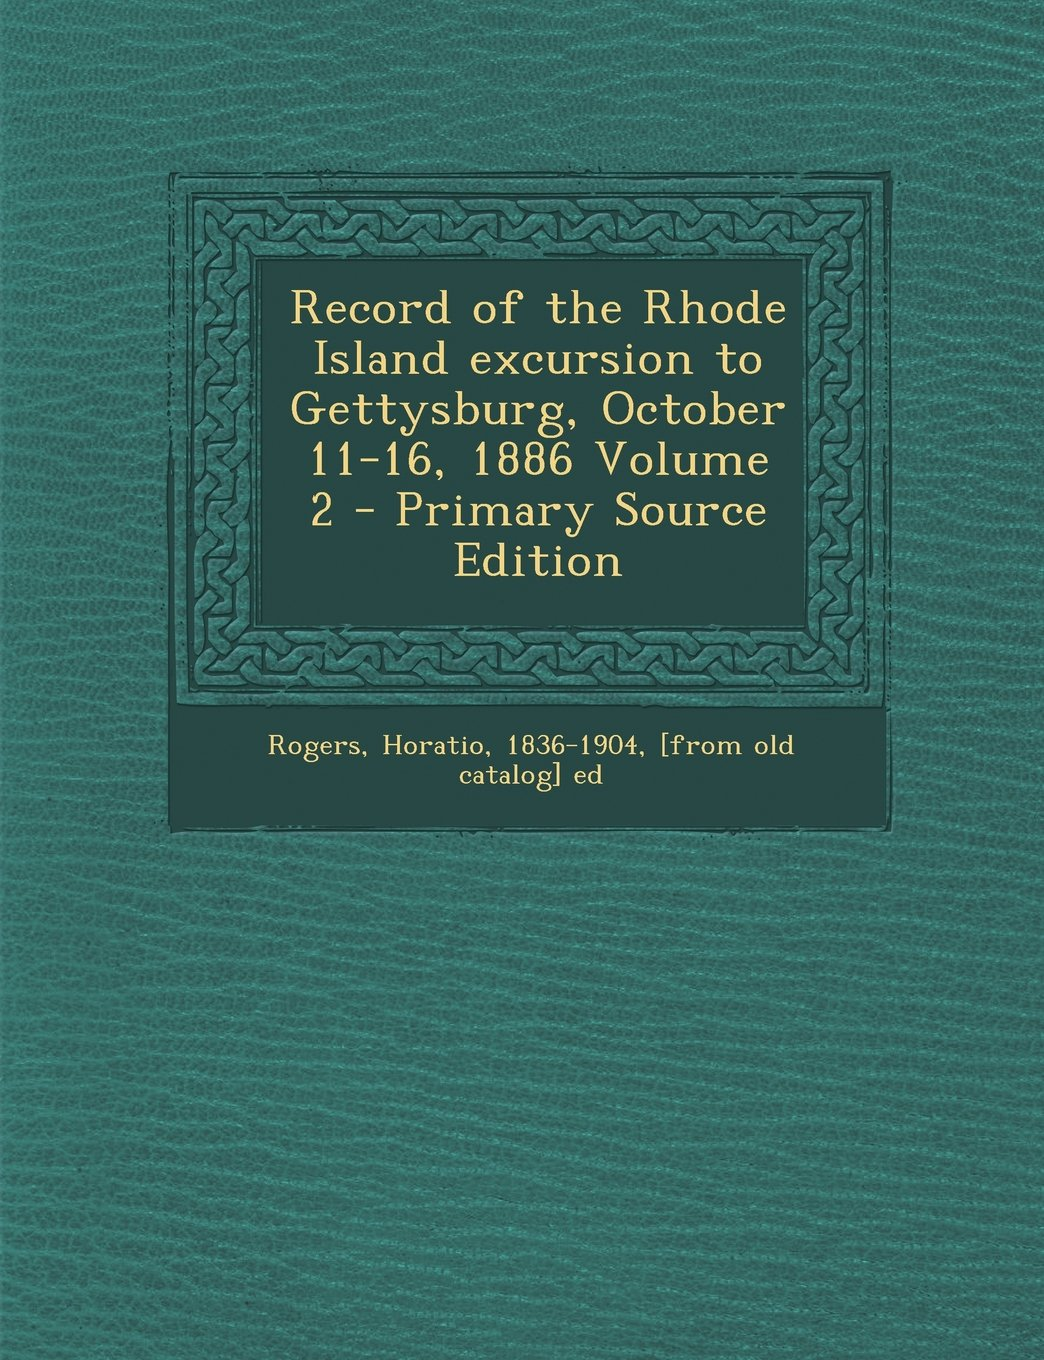 Record of the Rhode Island excursion to Gettysburg, October 11-16, 1886 Volume 2 ebook